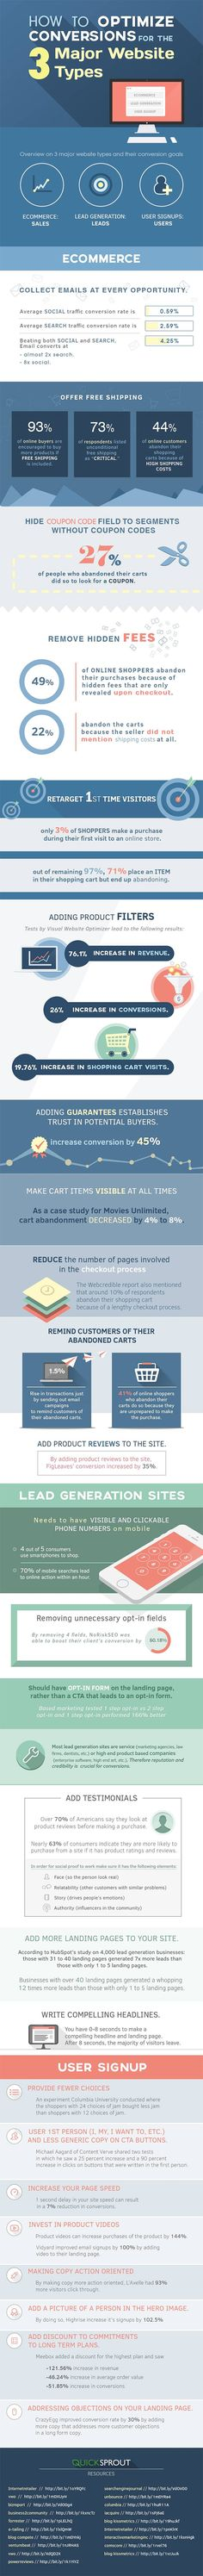 25 Powerful Tips Guaranteed to Increase the Conversion Rate of Your Website